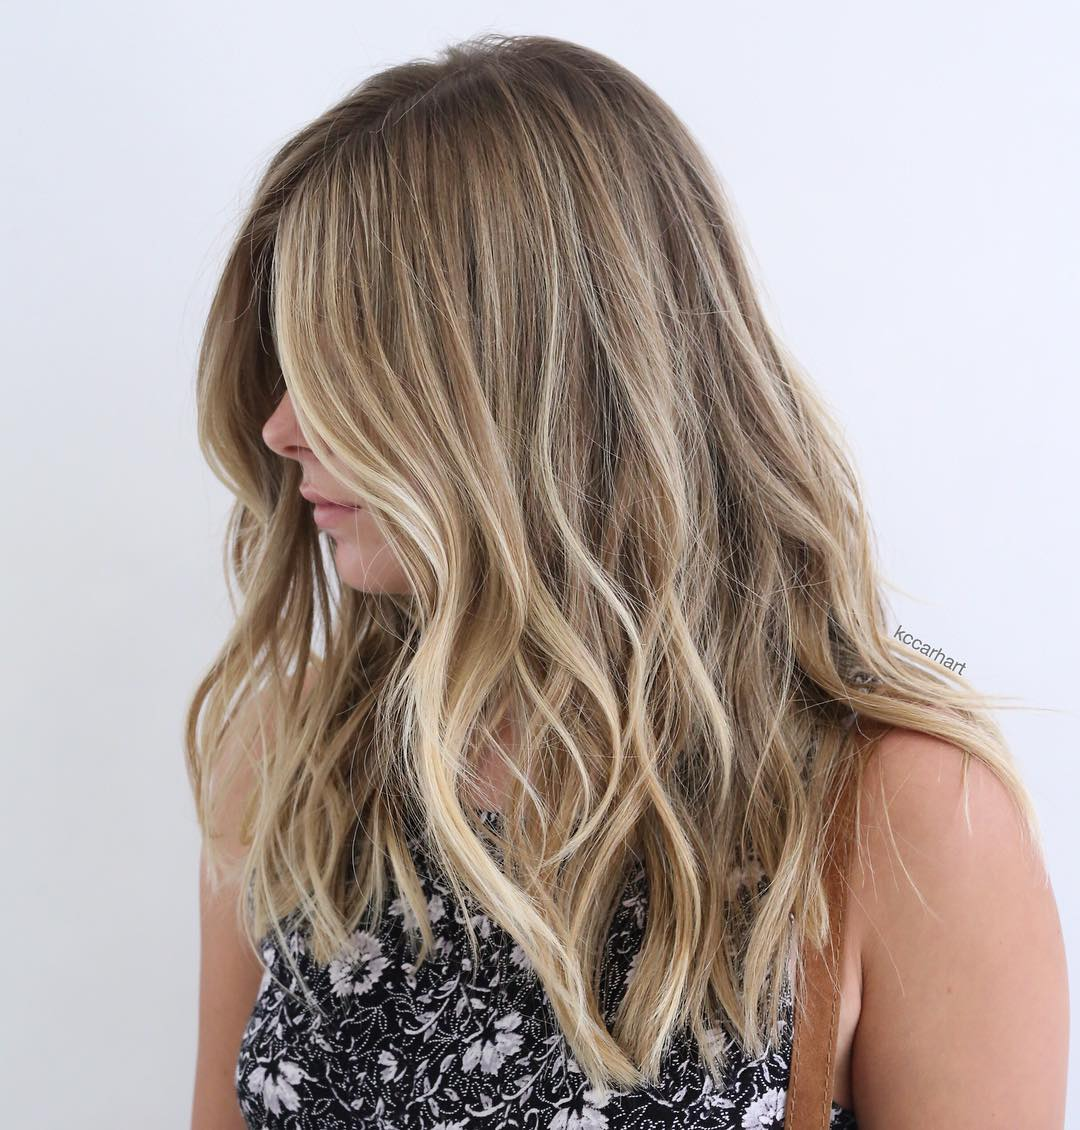 What is full vs partial balayage